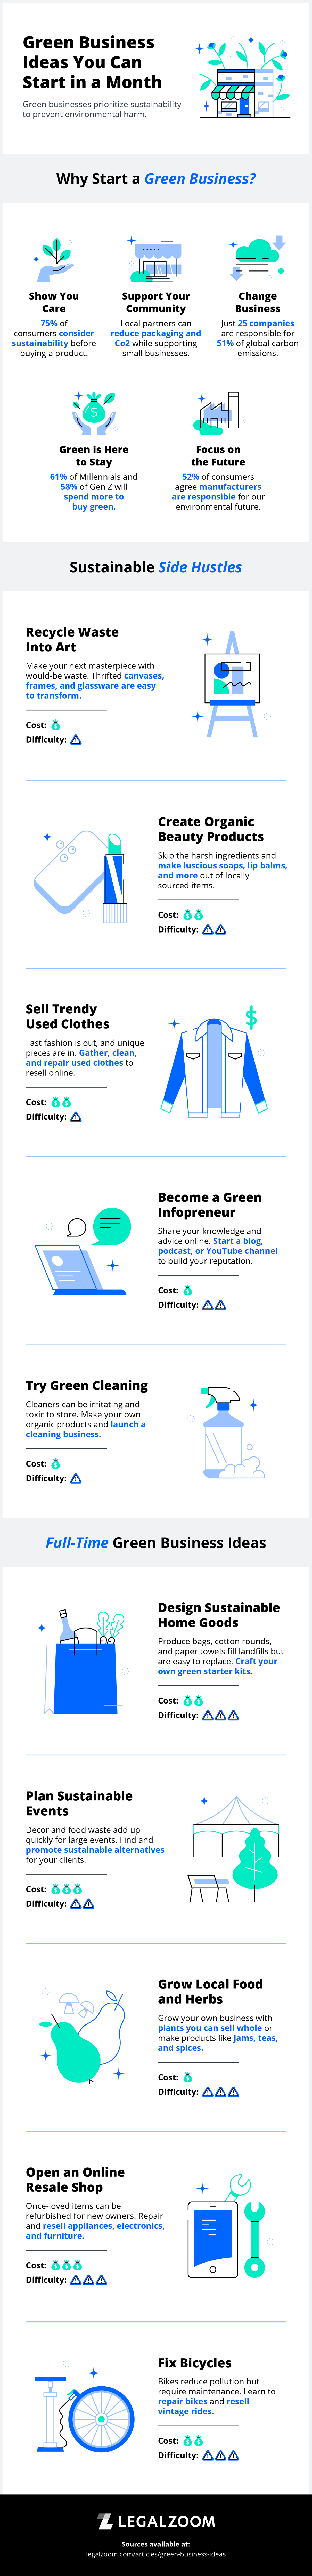 green business ideas infographic